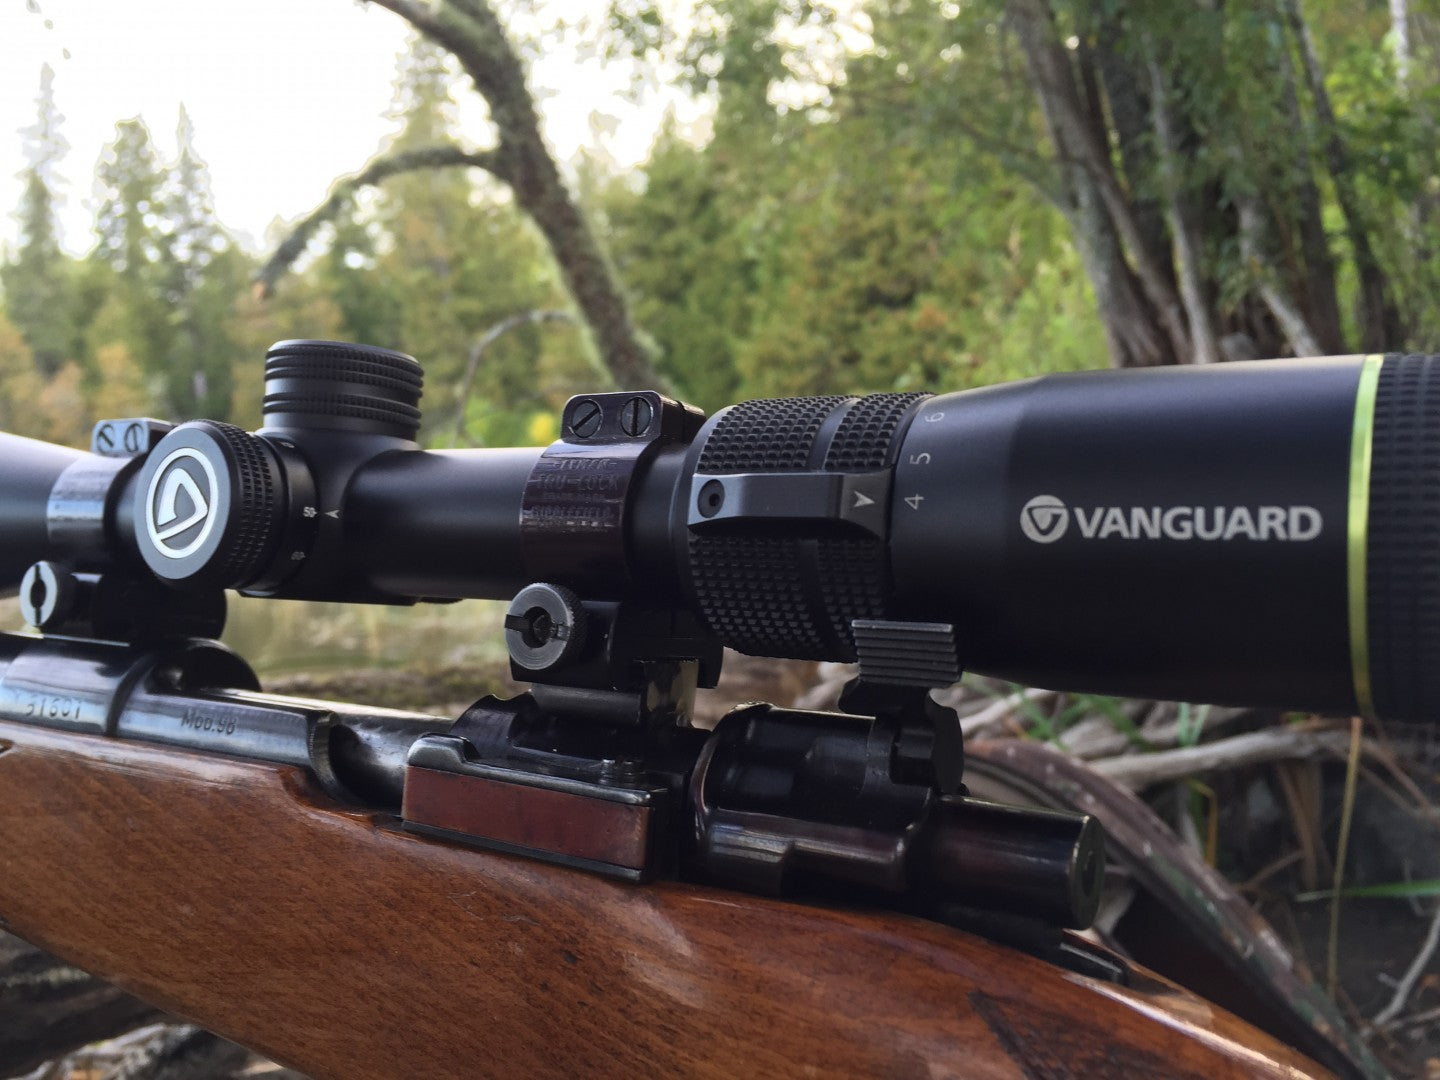 Vanguard's new Endeavor RS 4-12 x 40 mm riflescope